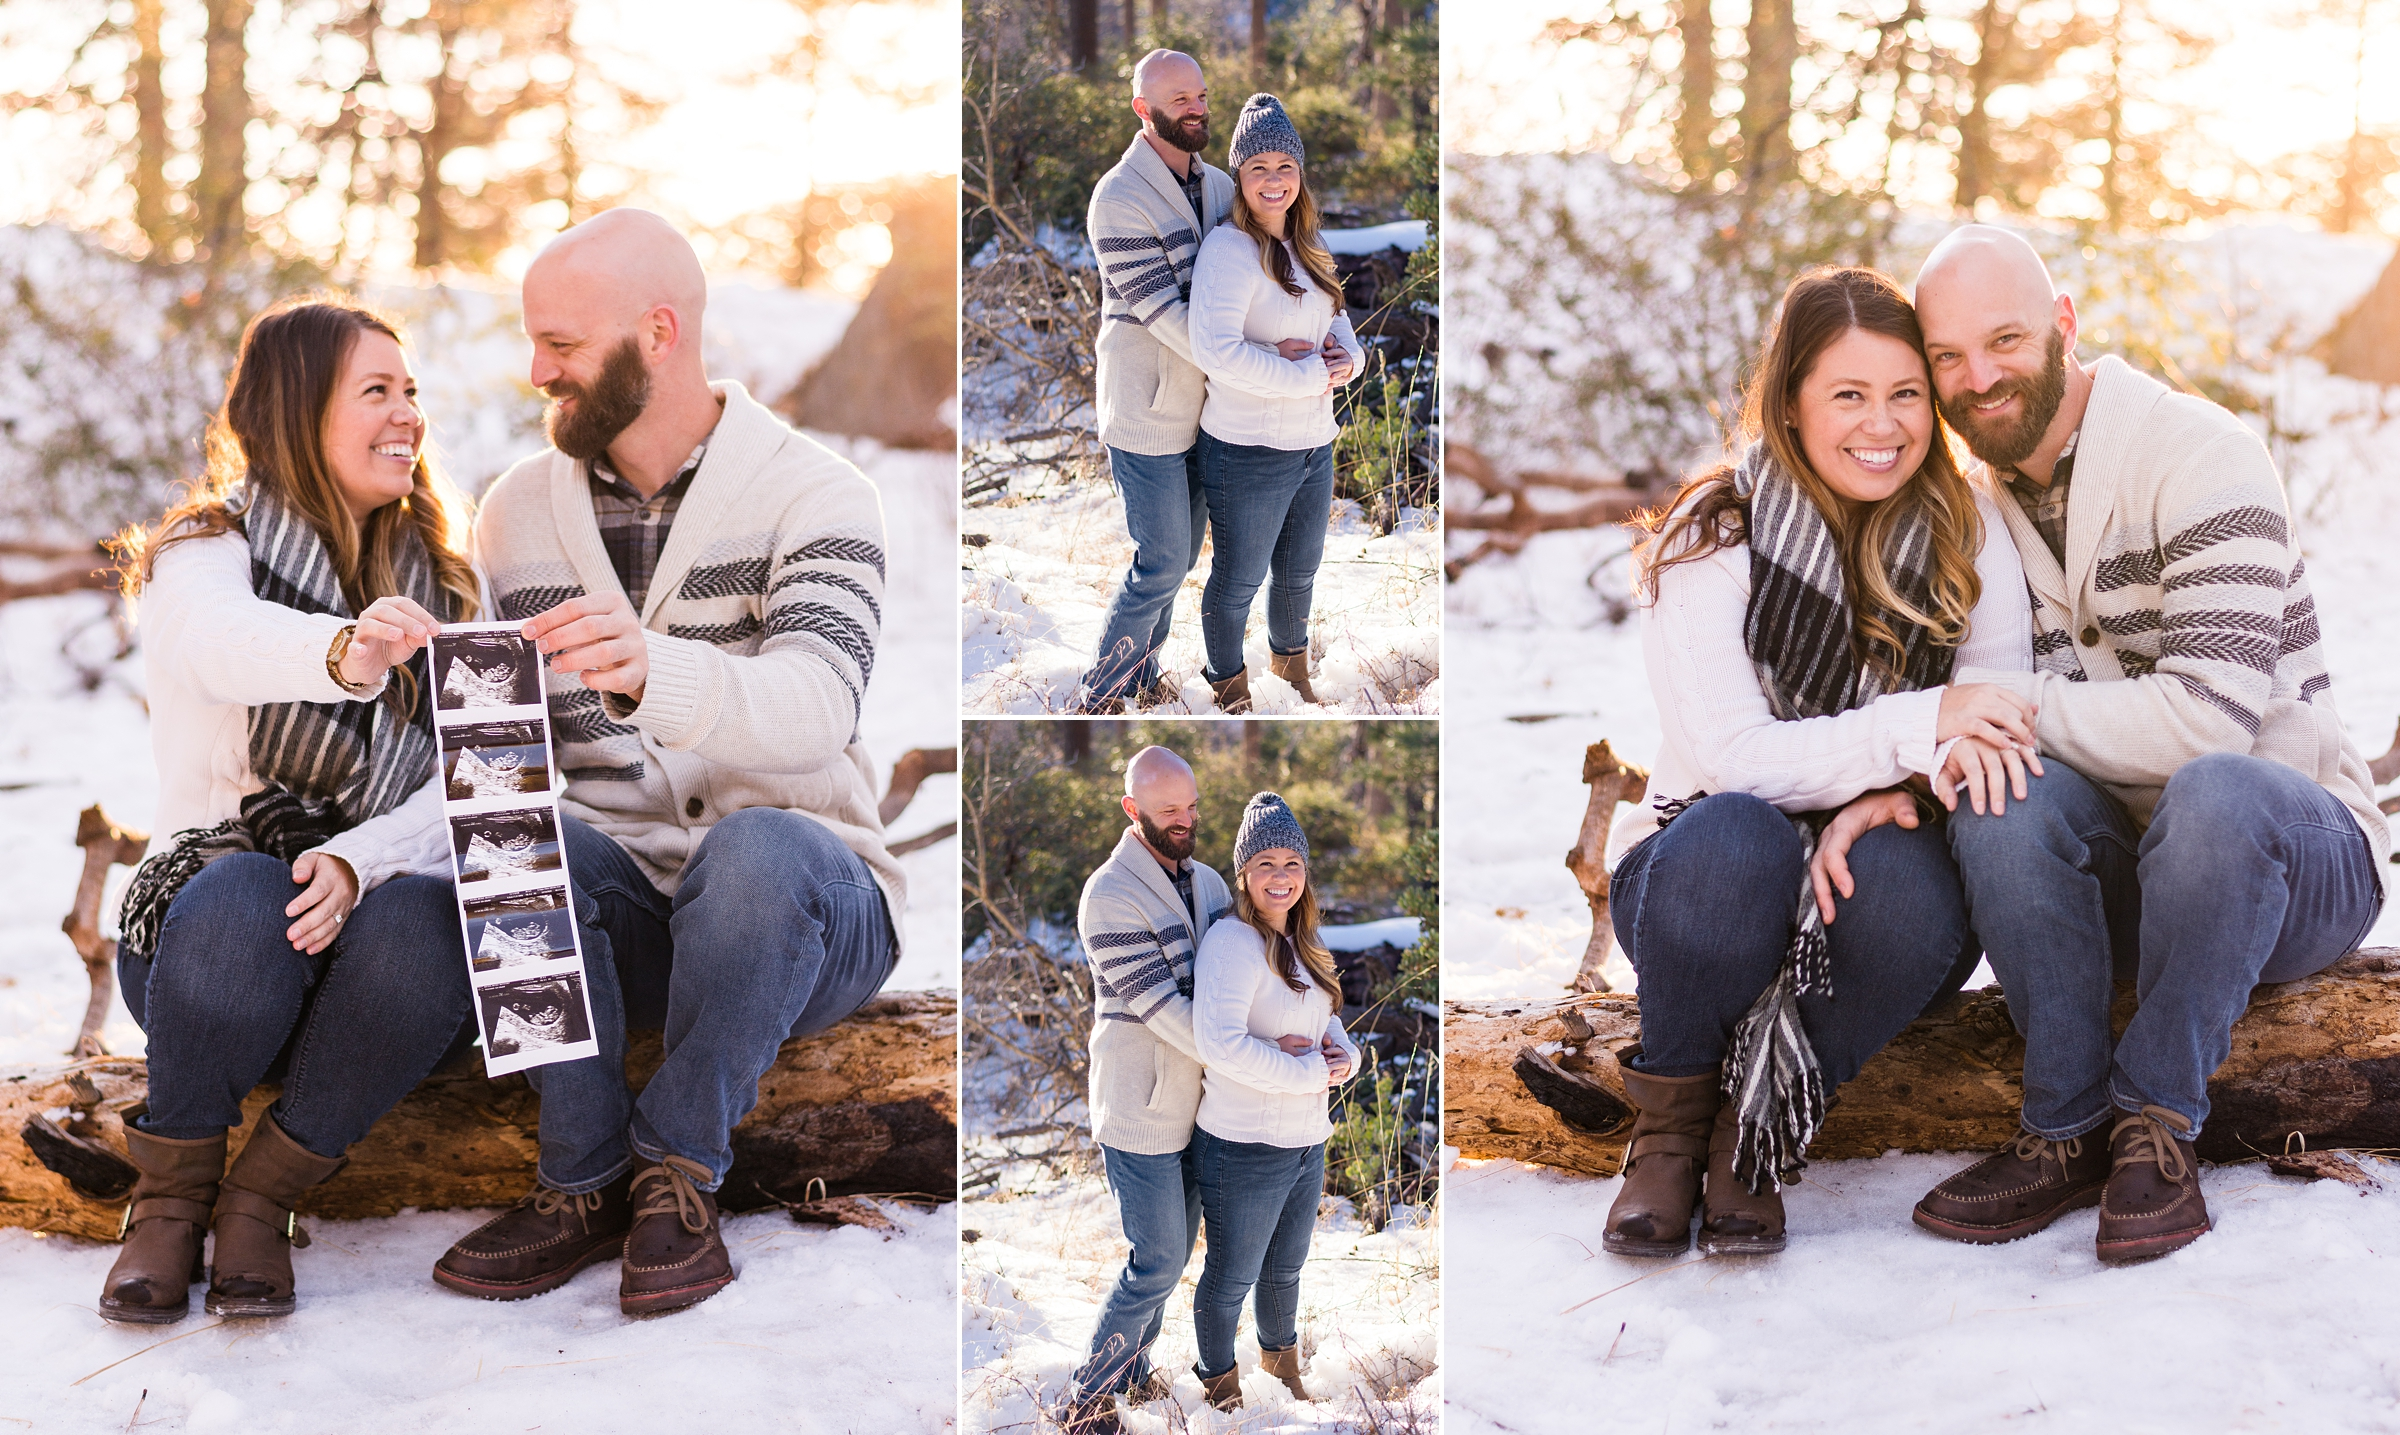 San Diego Couple Engagement Photos in the Snow